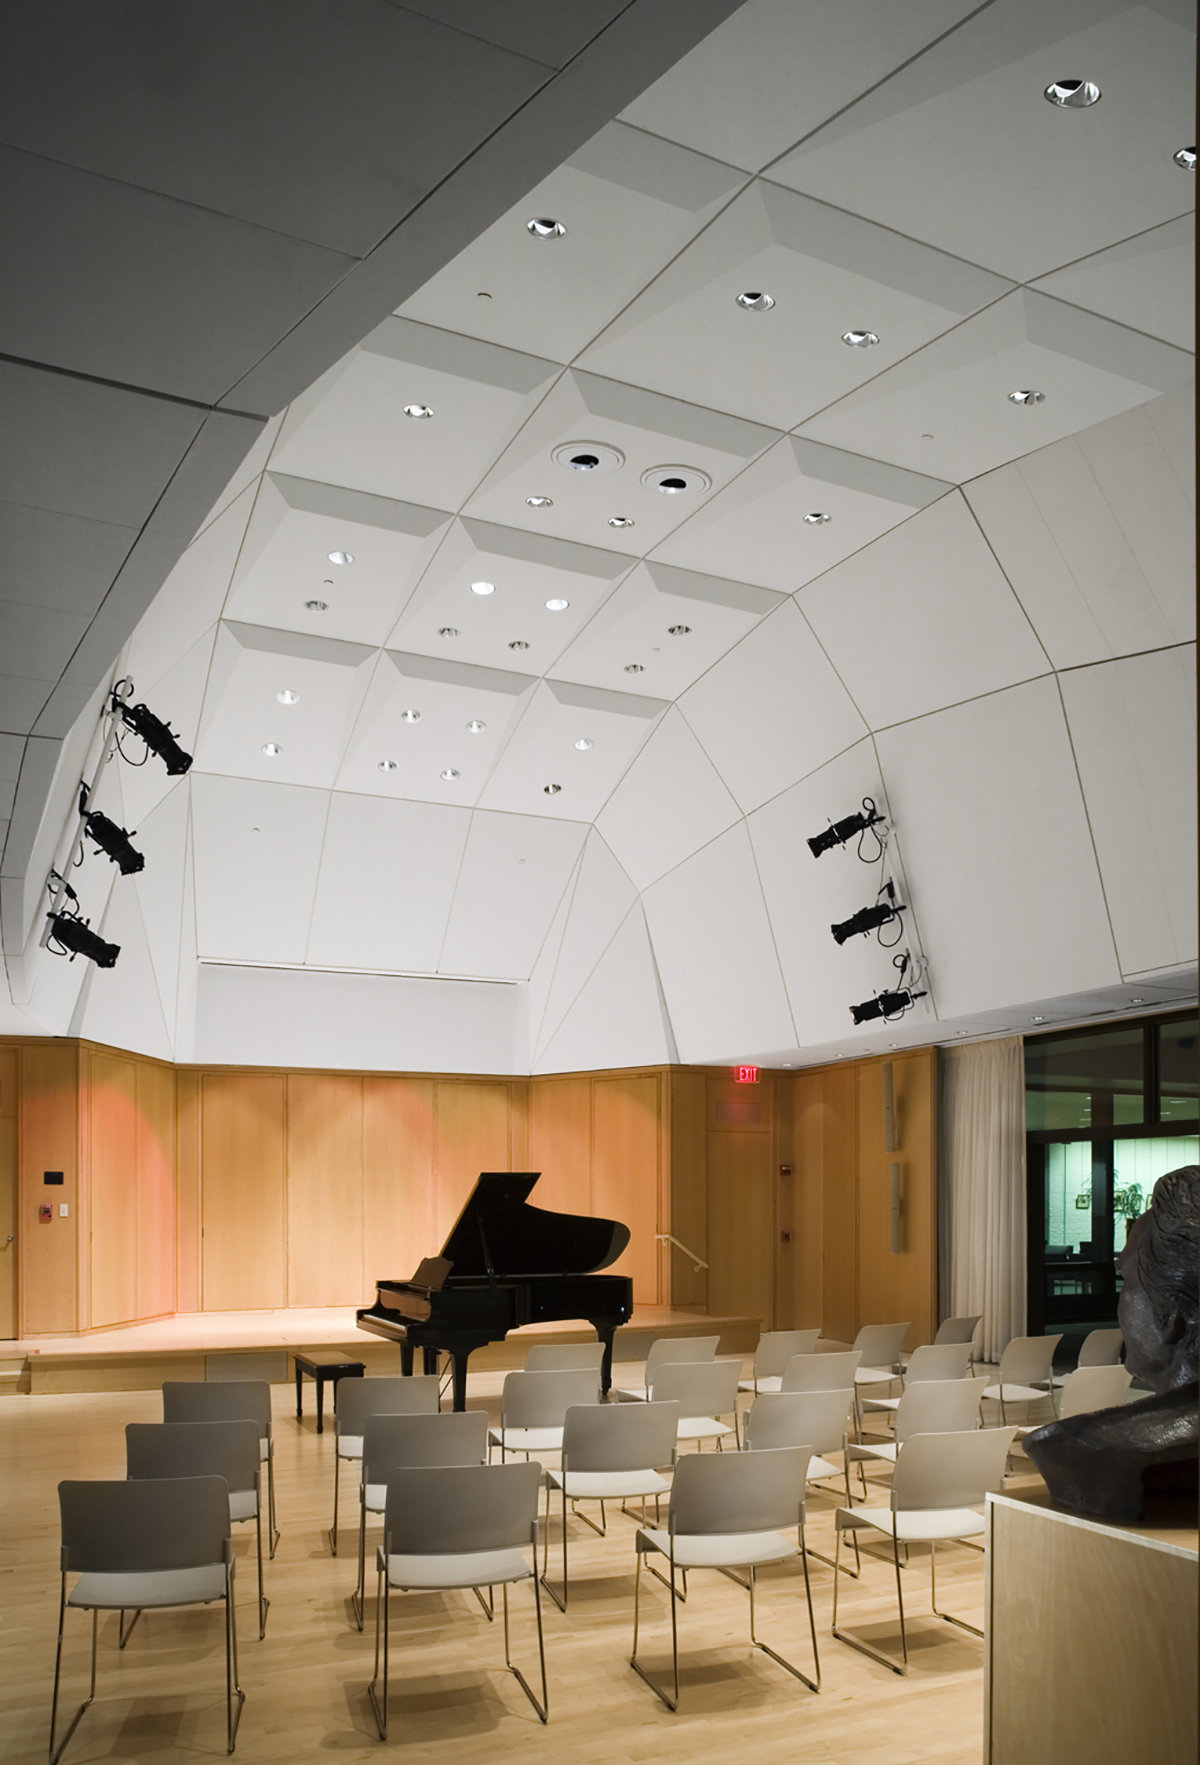 12 tskp wilton wilton library interior detail inside piano hall with lighting and seating layout 1400 xxx q85